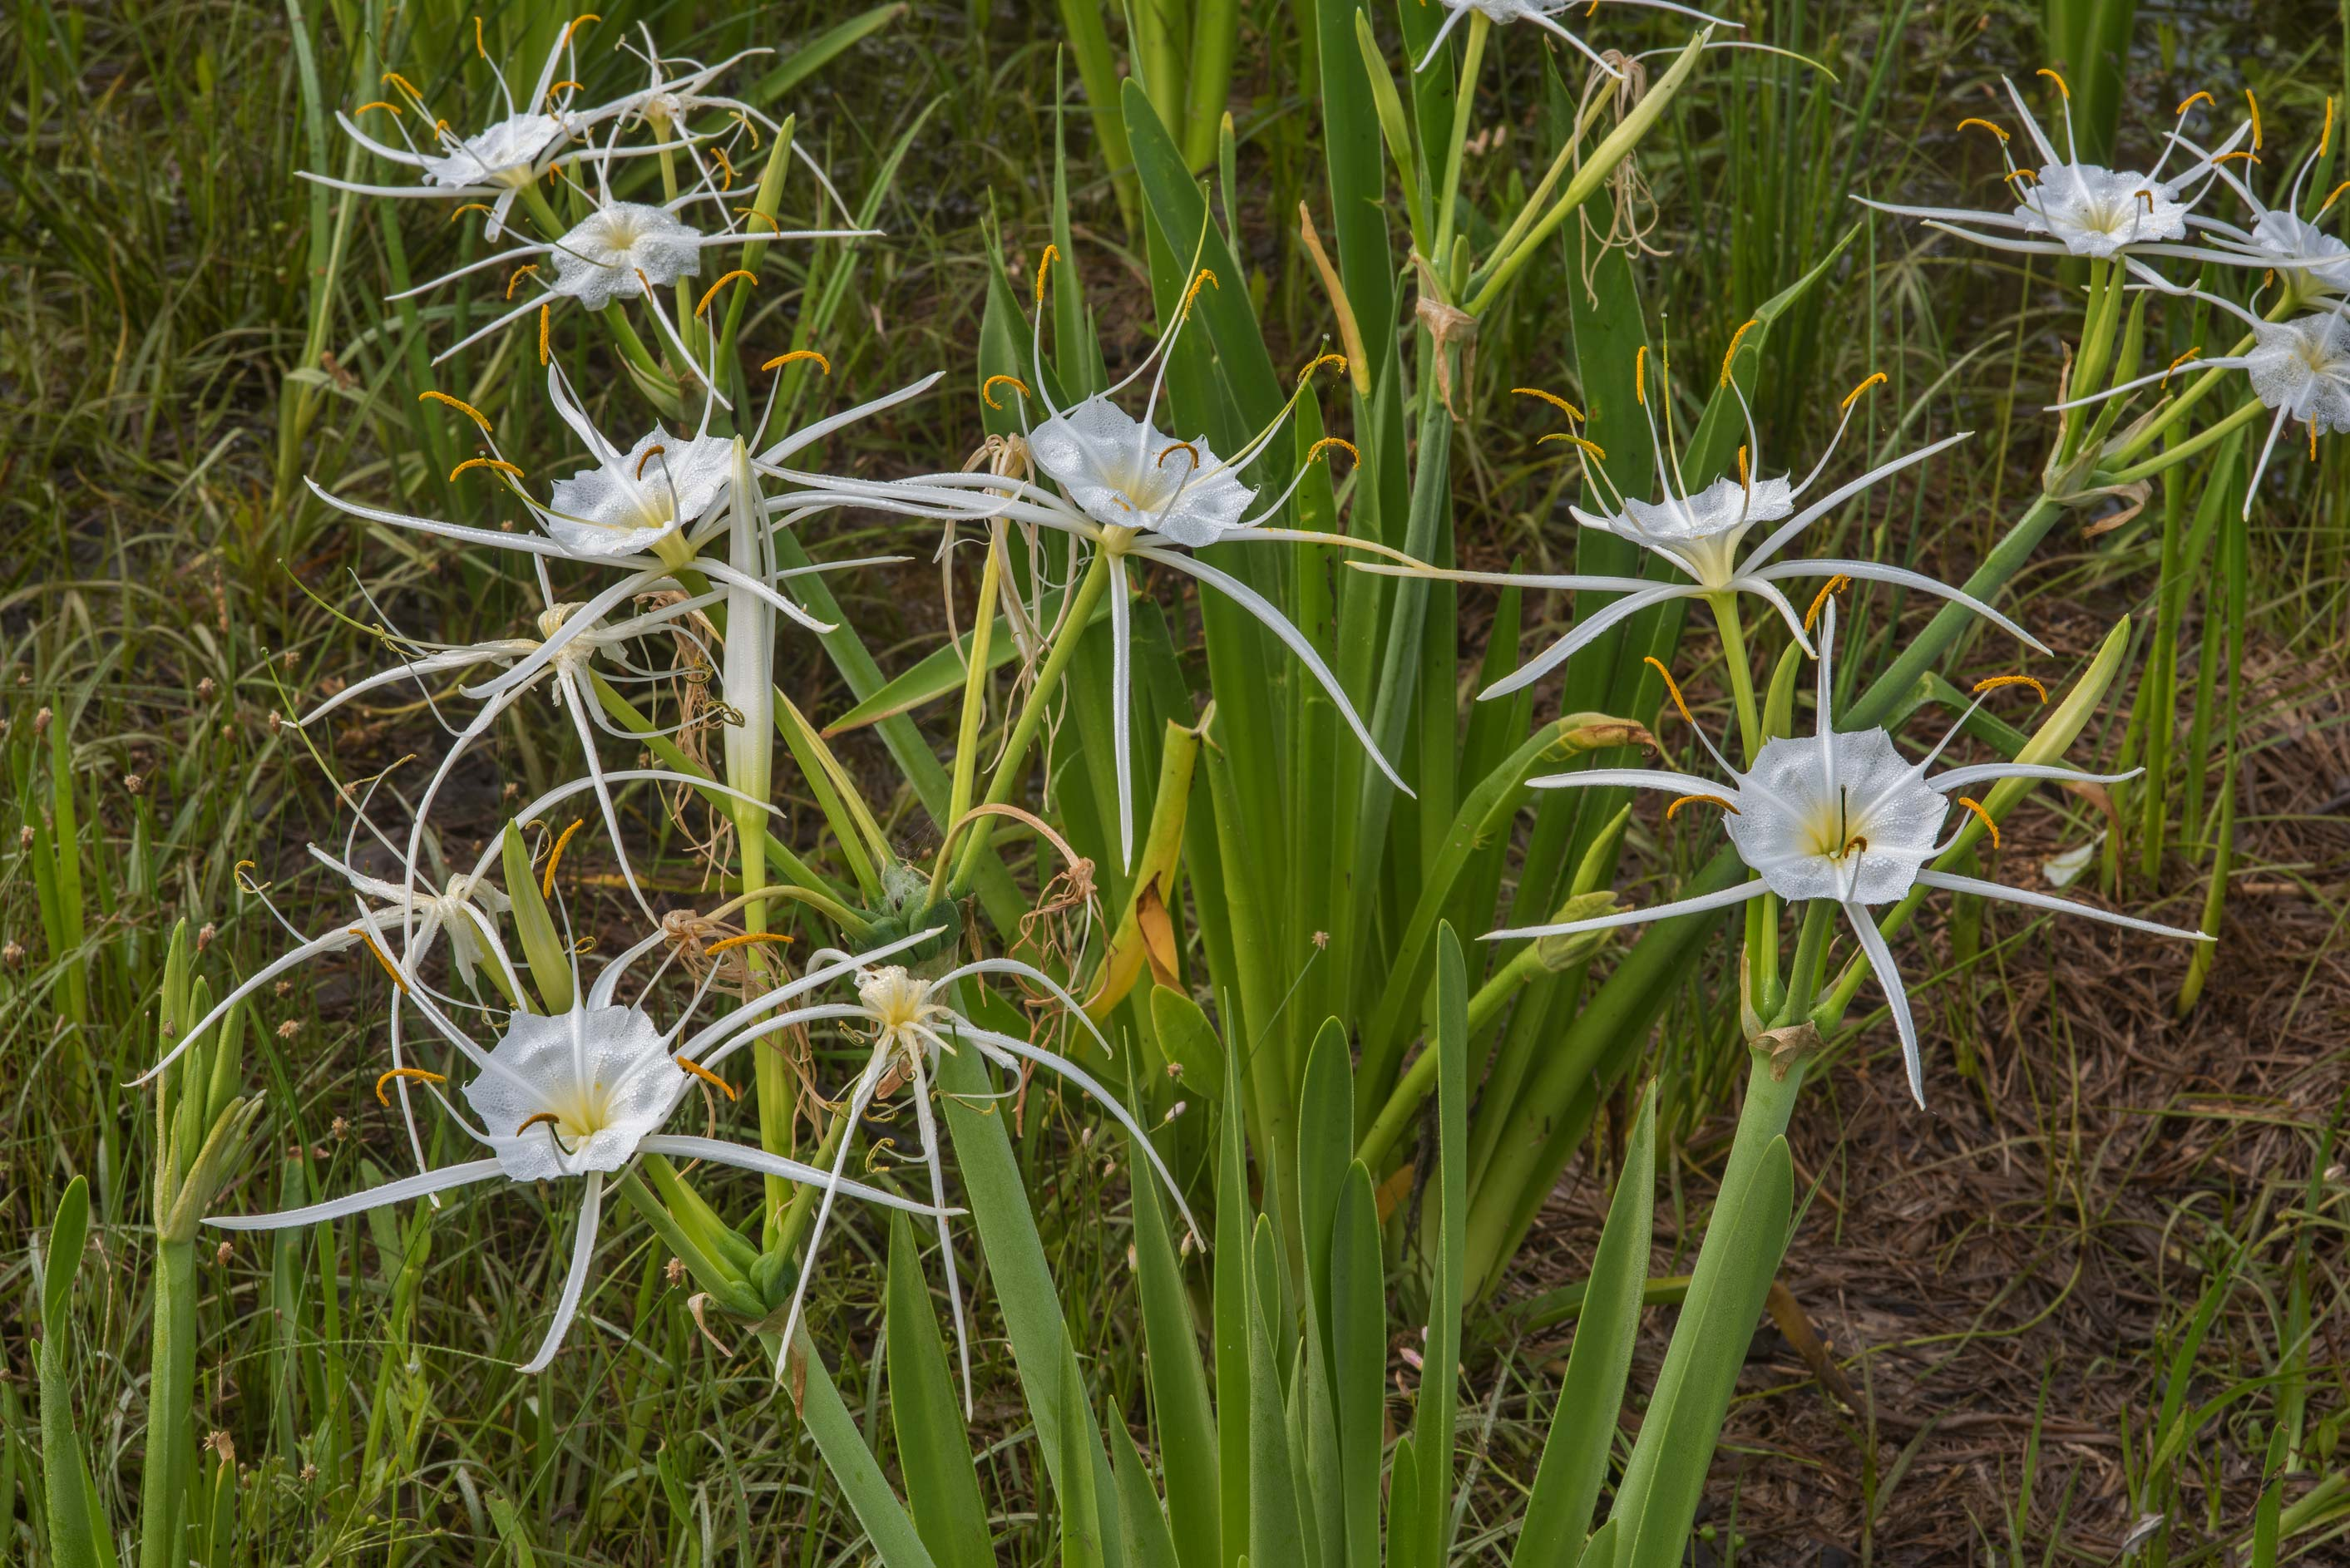 Spider lily (Hymenocallis) in a swamp near Rd. 30 north-east from College Station, Texas